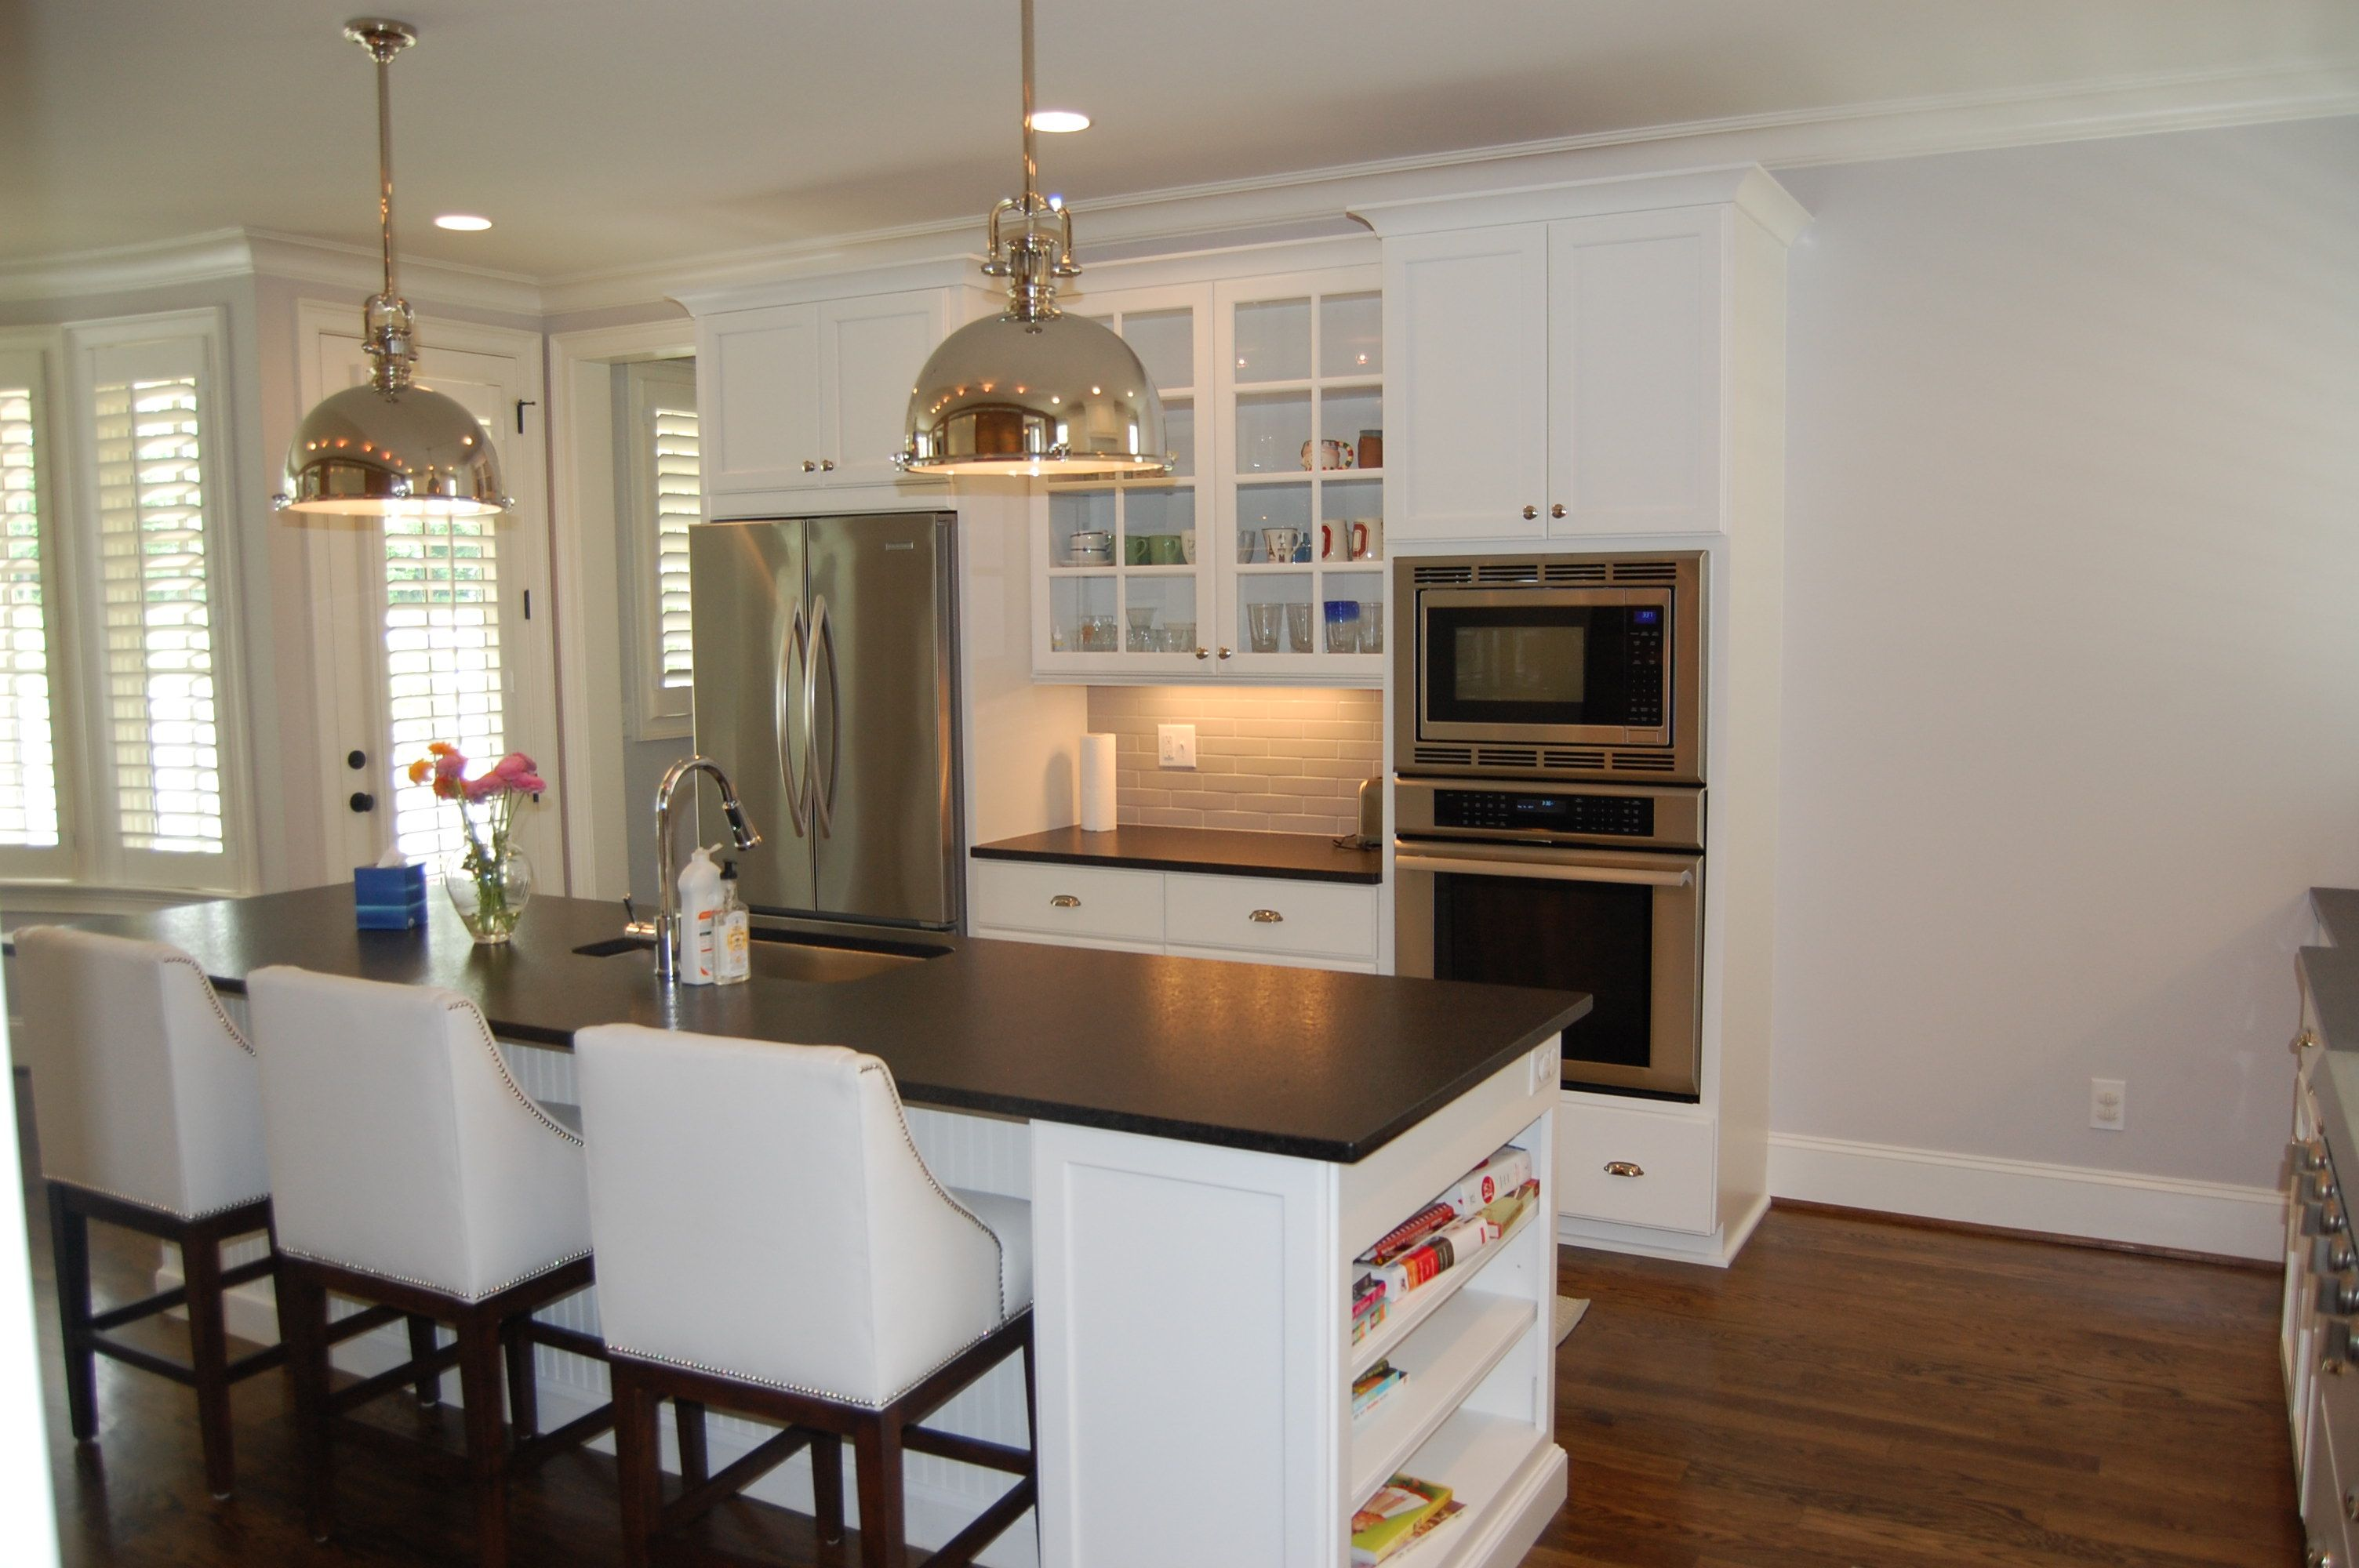 Red Line Cabinetry Hagerstown Kitchens Remodeling Cabinets Md